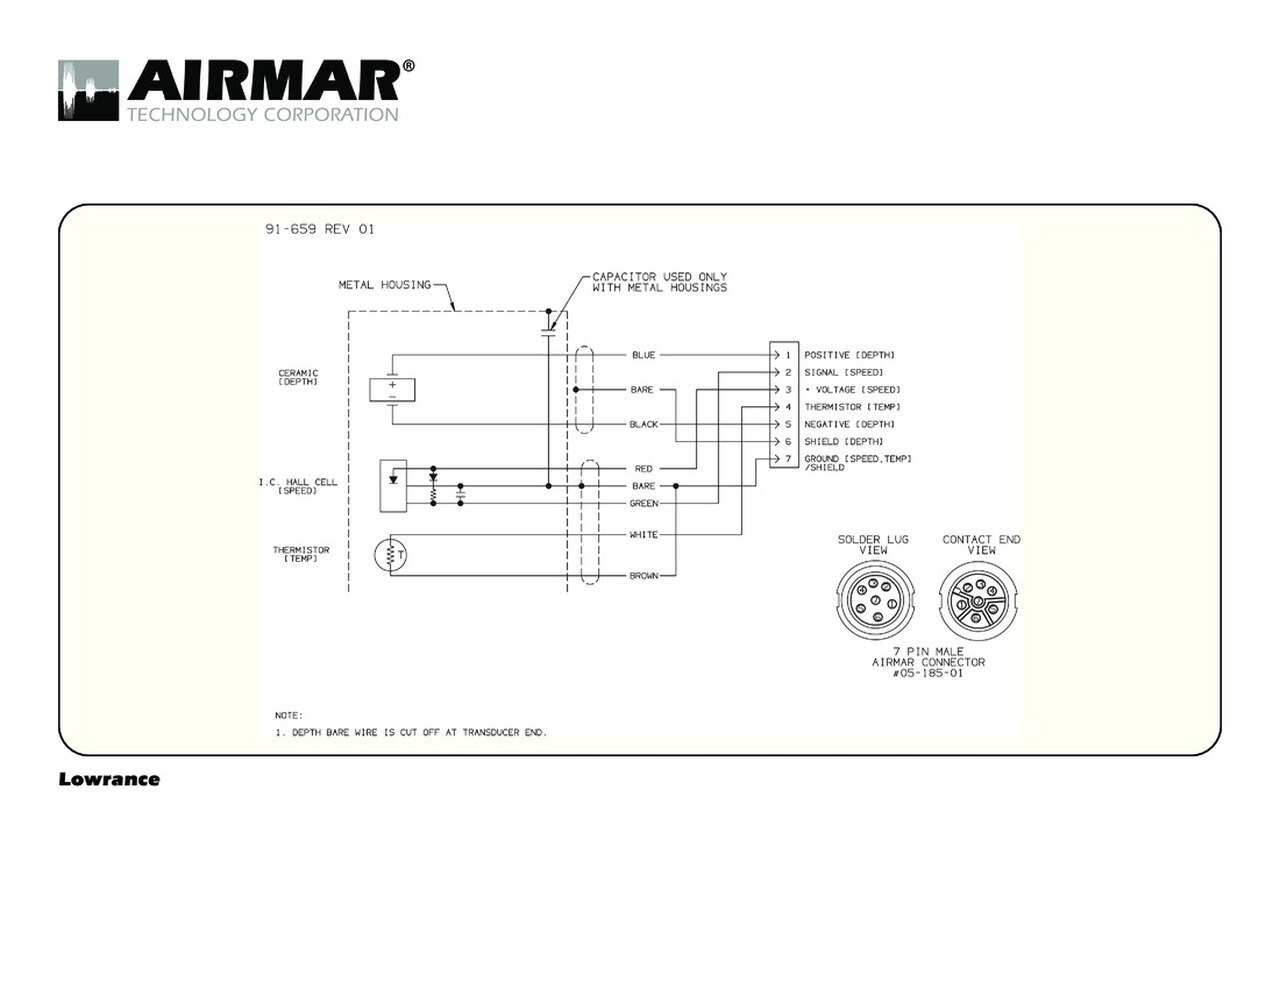 lowrance fishfinder wiring diagram - wiring diagram 88 chevy 4x4 for wiring  diagram schematics  wiring diagram schematics